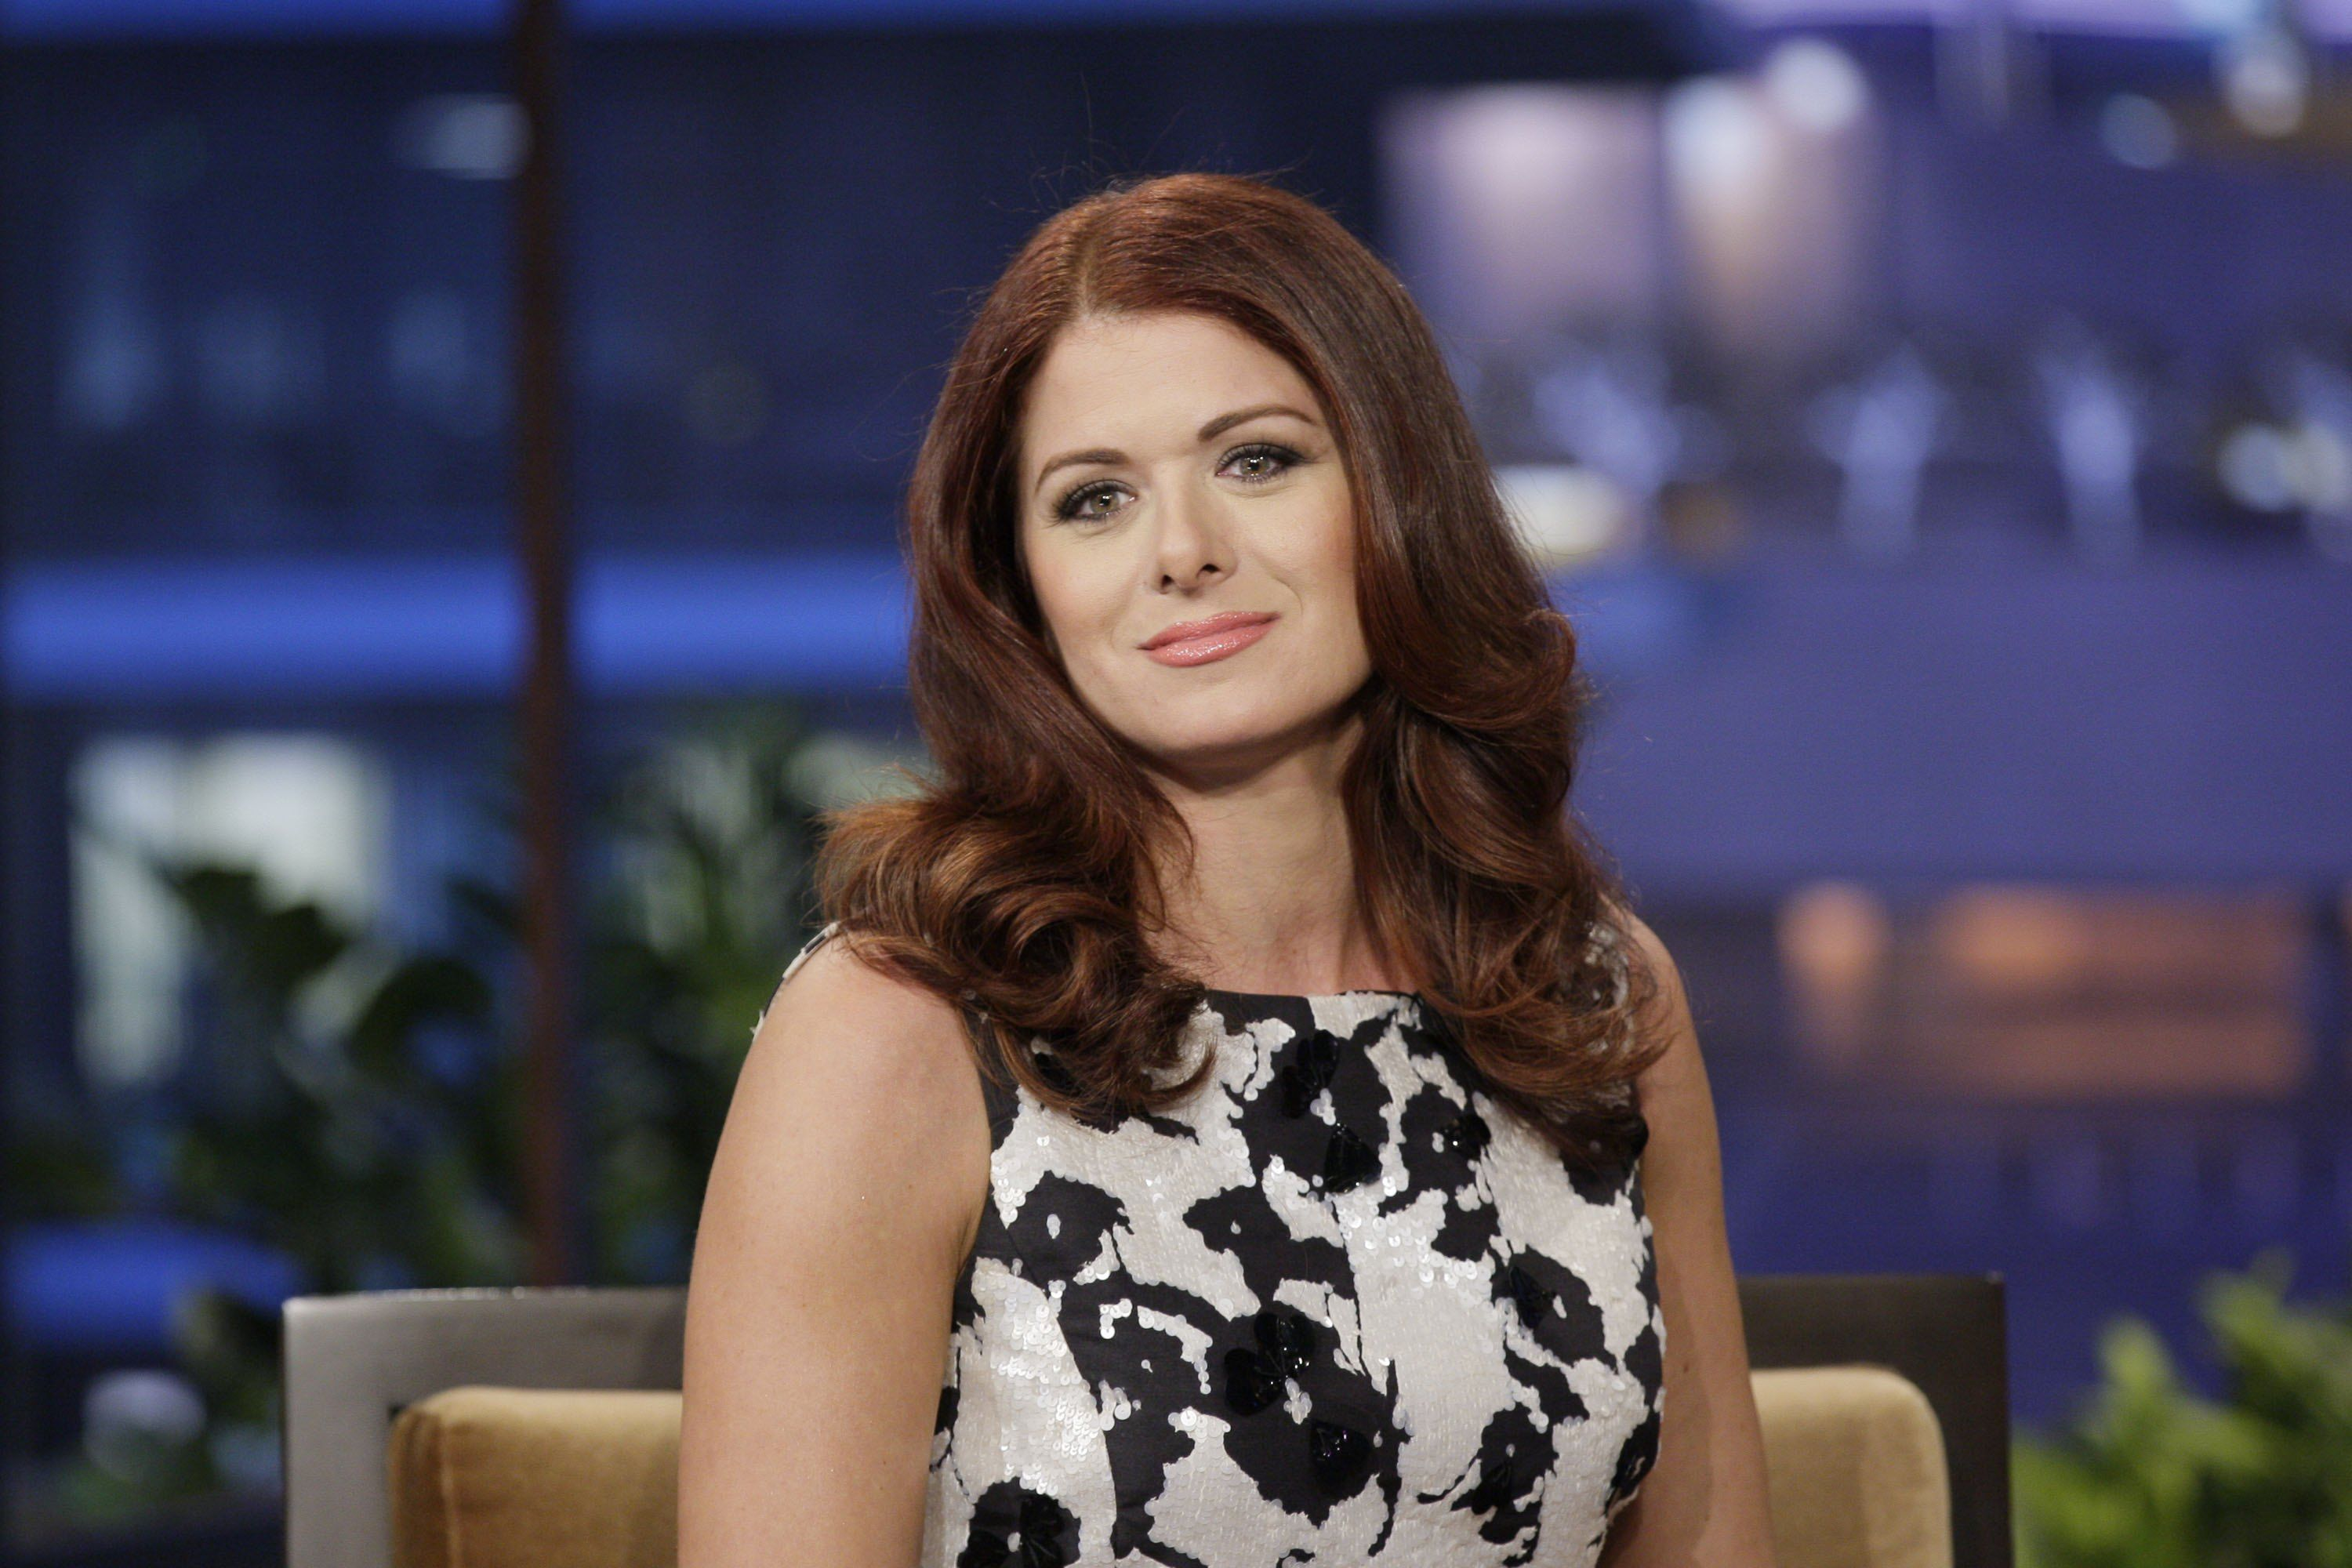 """Debra Messing during an interview on """"The Tonight Show with Jay Leno"""" on February 3, 2012   Photo: Stacie McChesney/NBC/NBCU Photo Bank/Getty Images"""